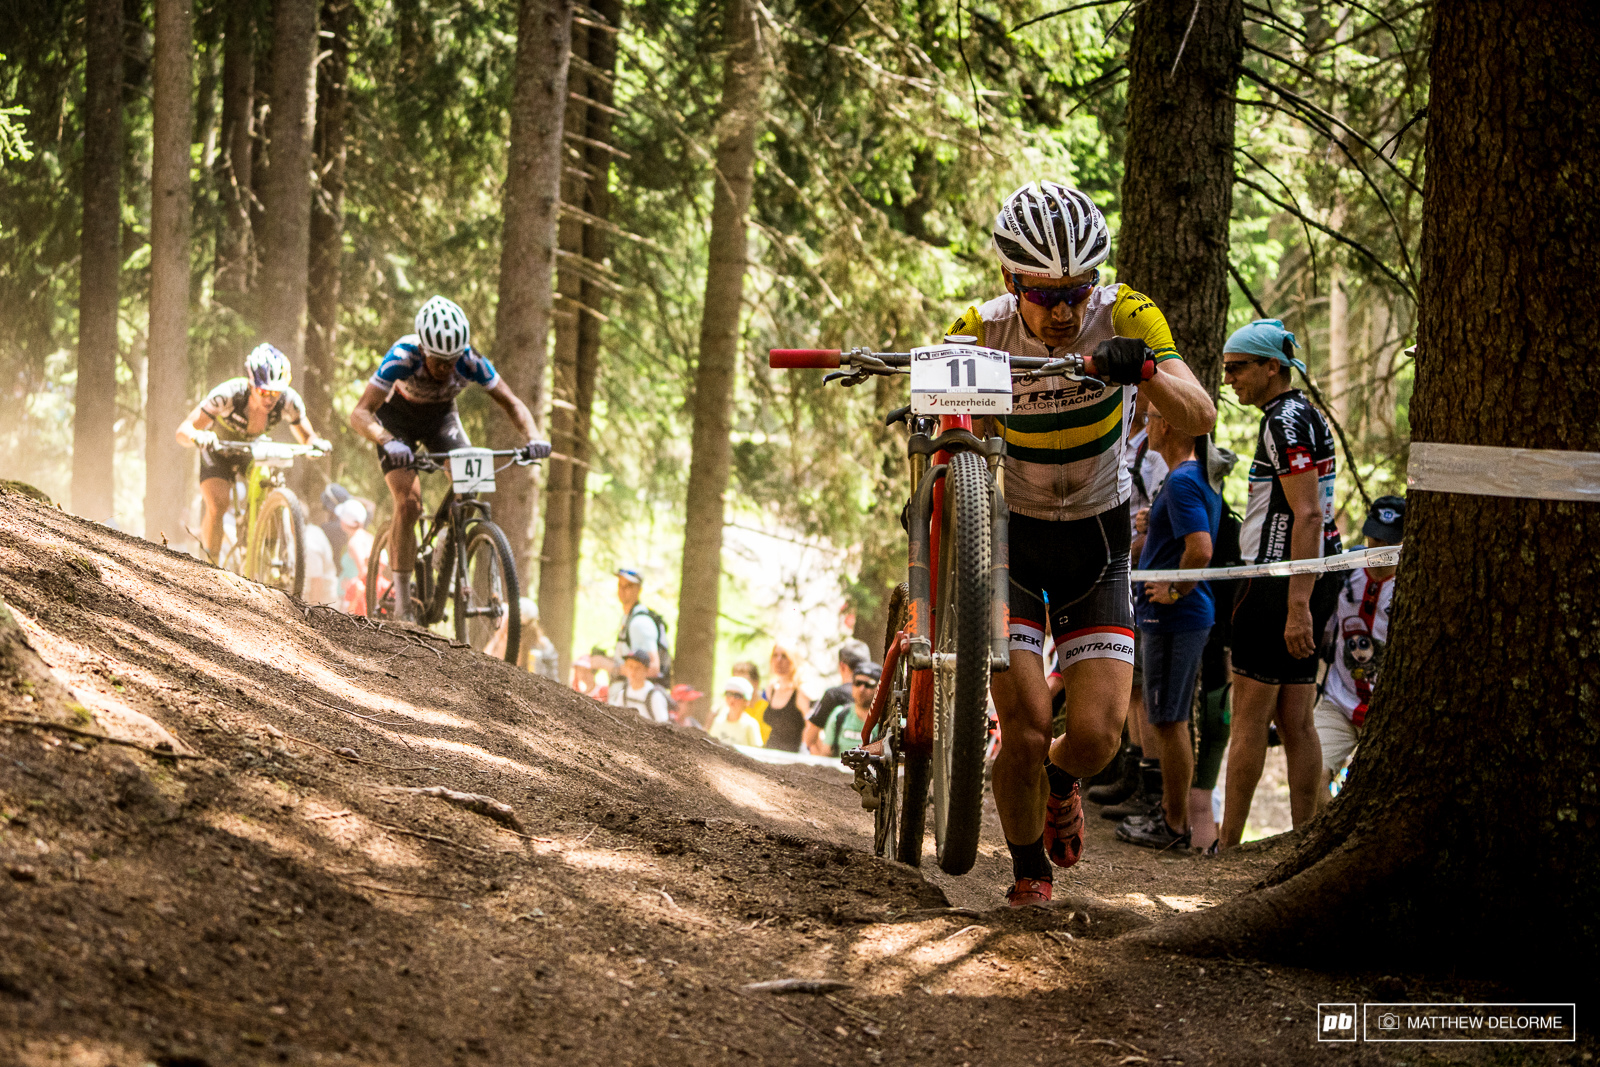 Dan McConnell was another who was struck with back luck flatting far out from the tech zone.